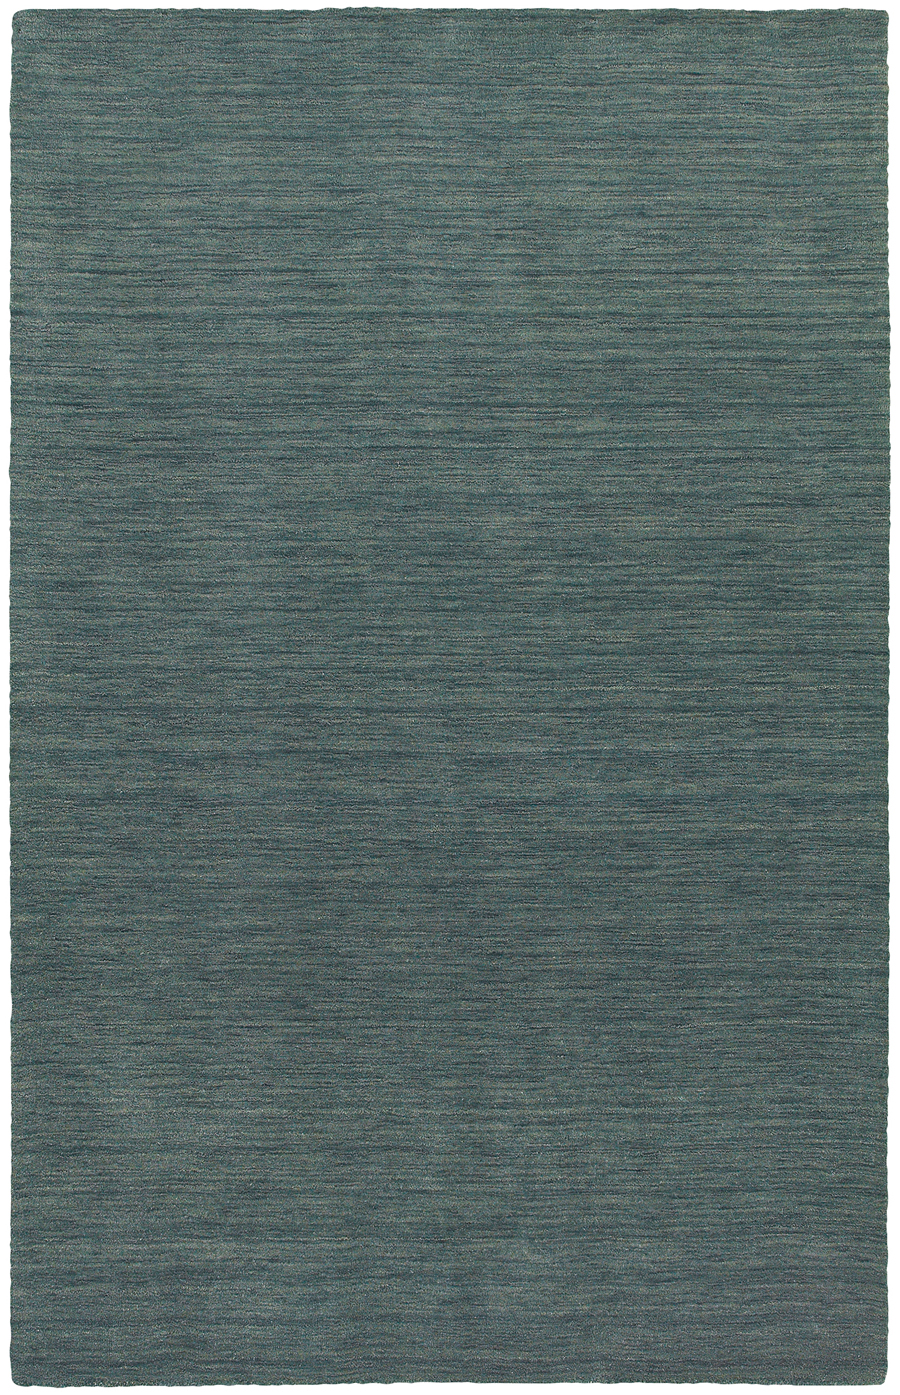 Oriental Weavers Sphinx Aniston 27101 Rug